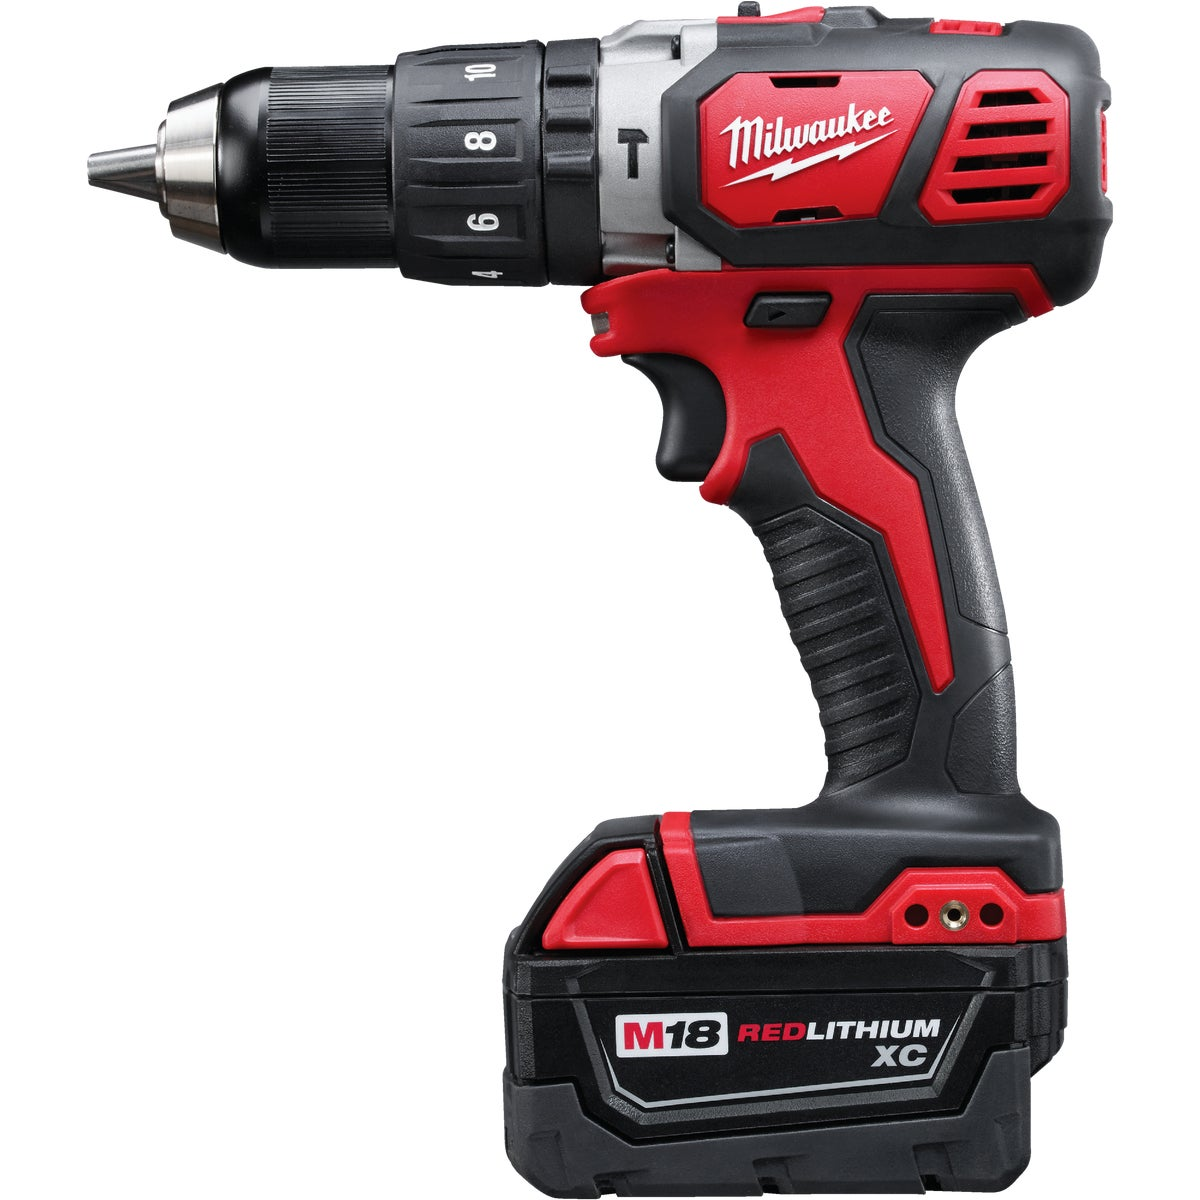 "M18 1/2"" HAMMER DRILL - 260222 by Milwaukee Elec Tool"